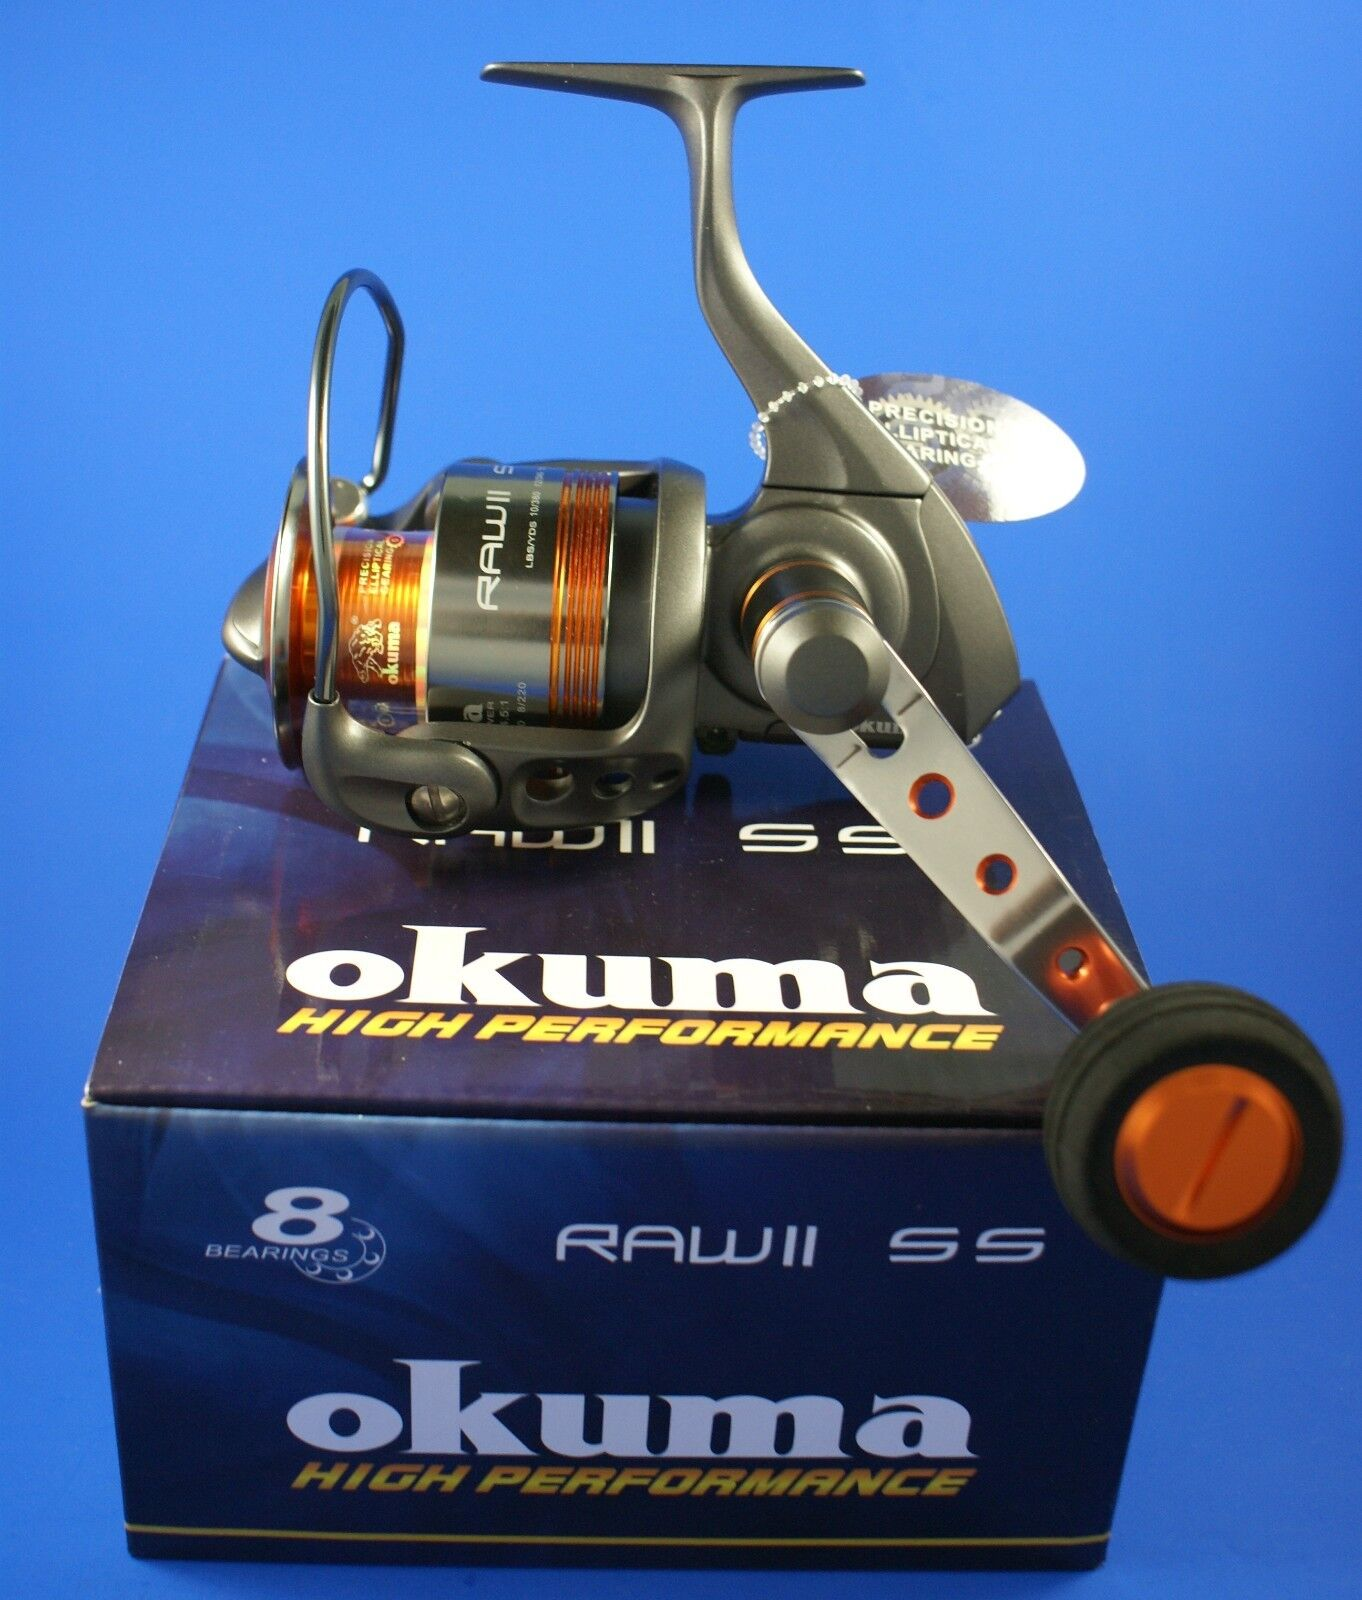 Okuma RAW II 55 FD 7+1BB 4.5 1 43970 Front Drag Fishing Reel